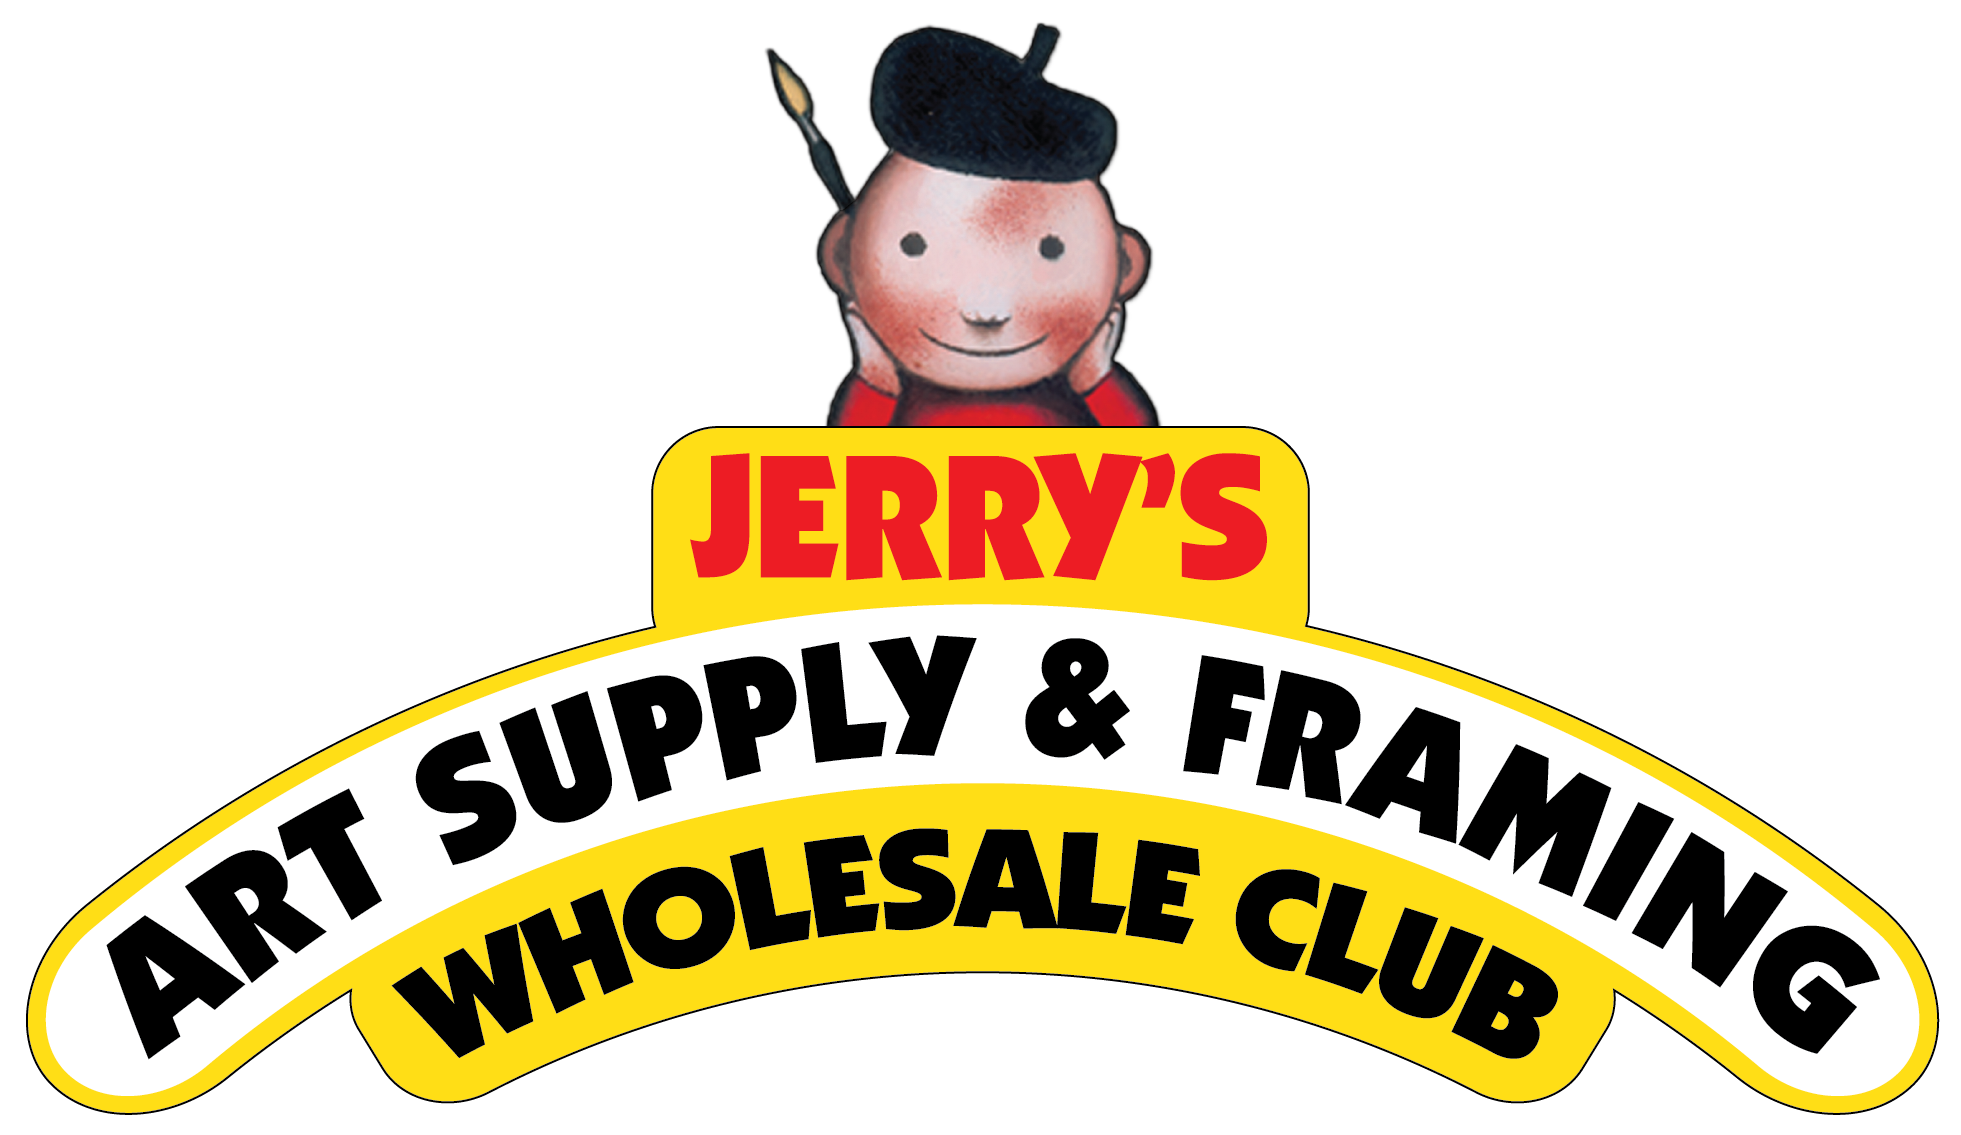 Jerry's Art Supply & Framing Wholesale Club – Greensboro